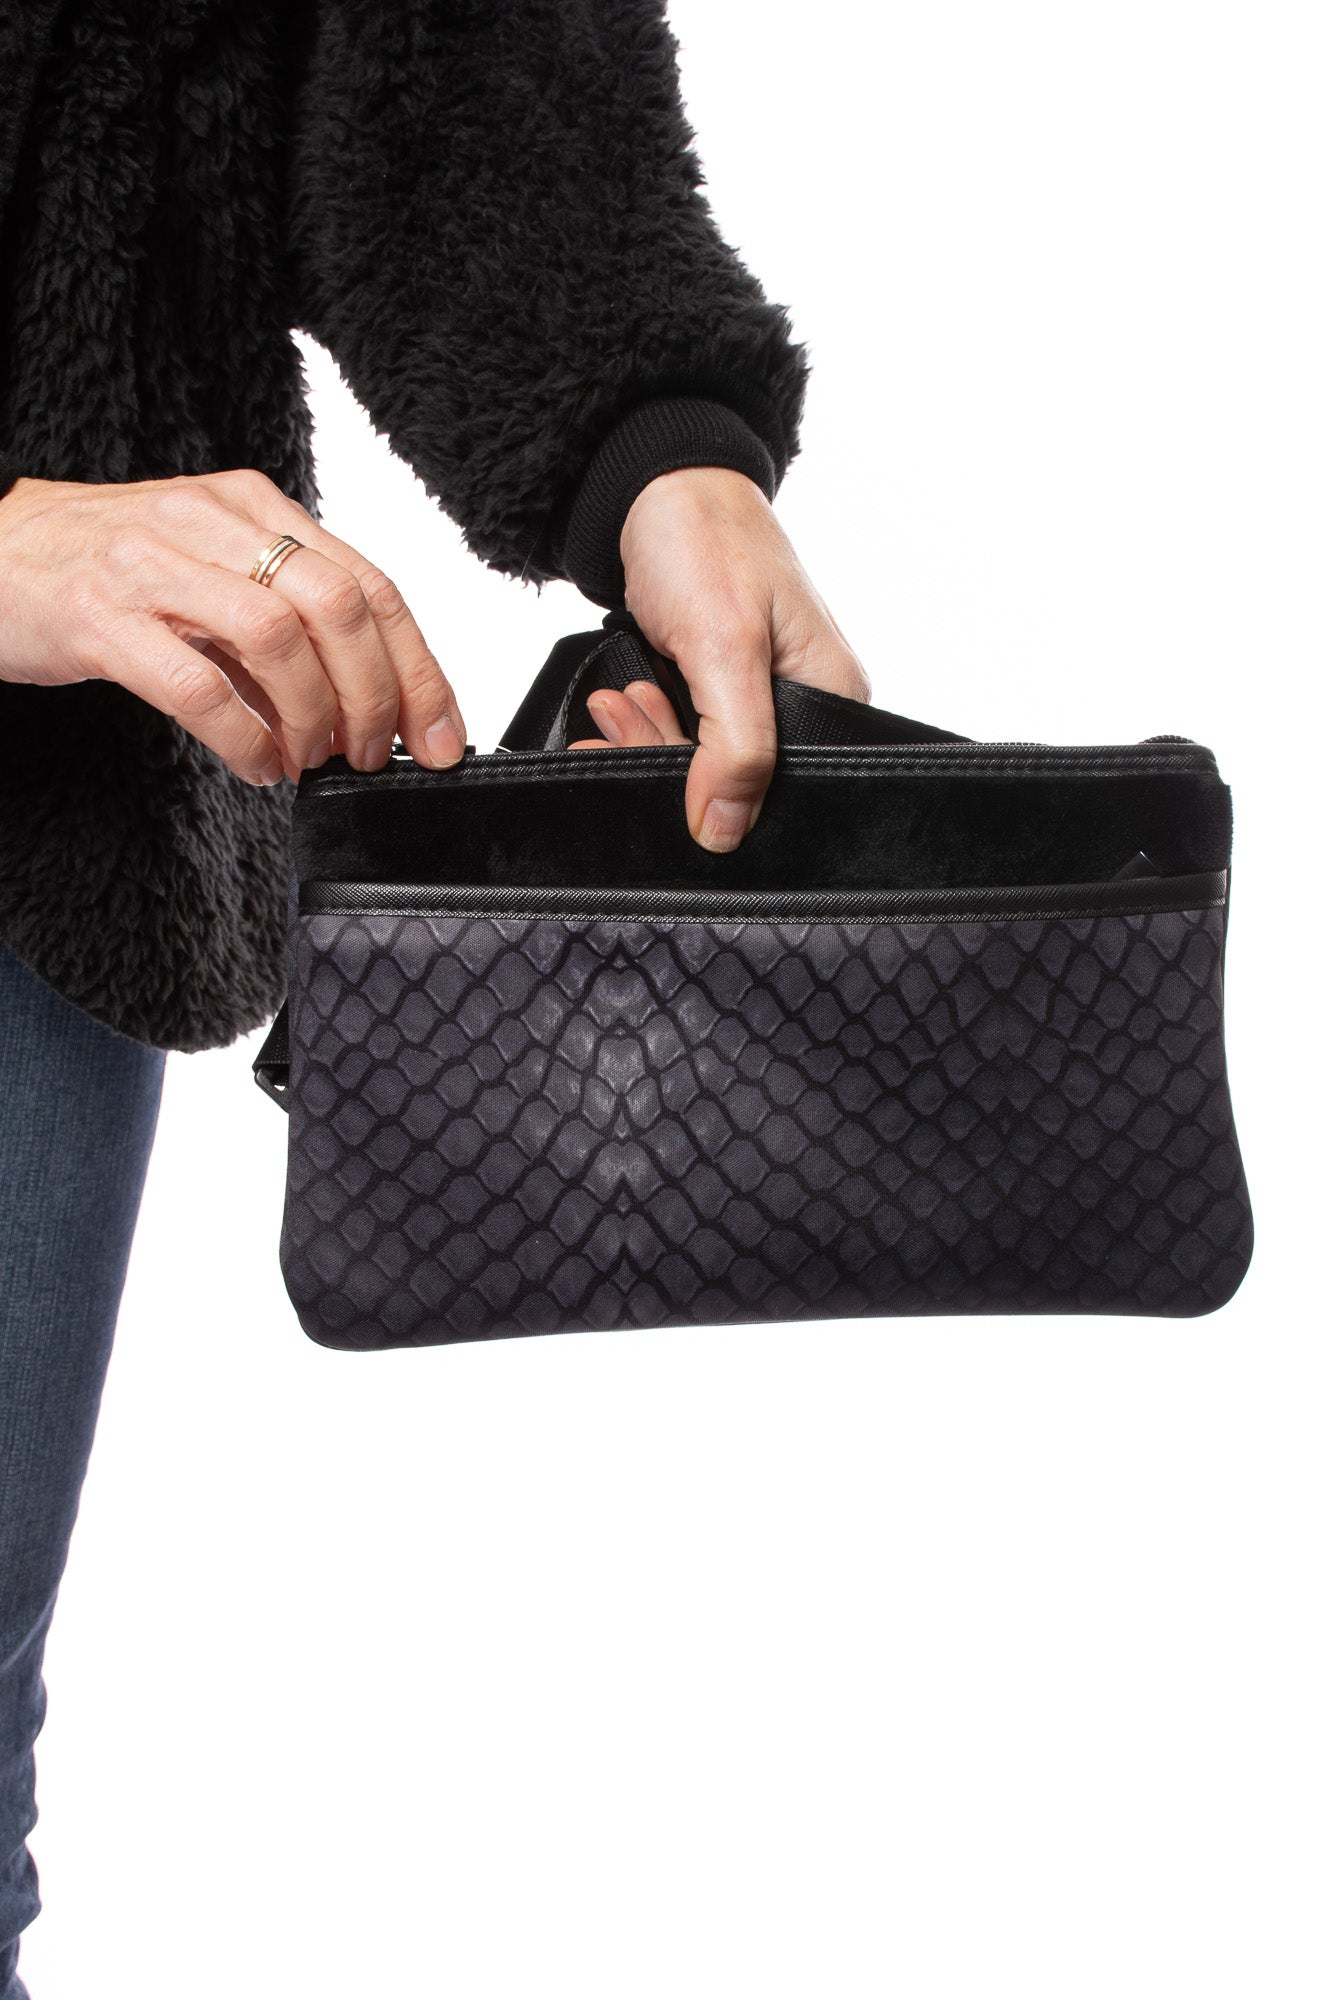 Haute Shore - Dylan Belt Bag (Dylan, Black Gator Skin)